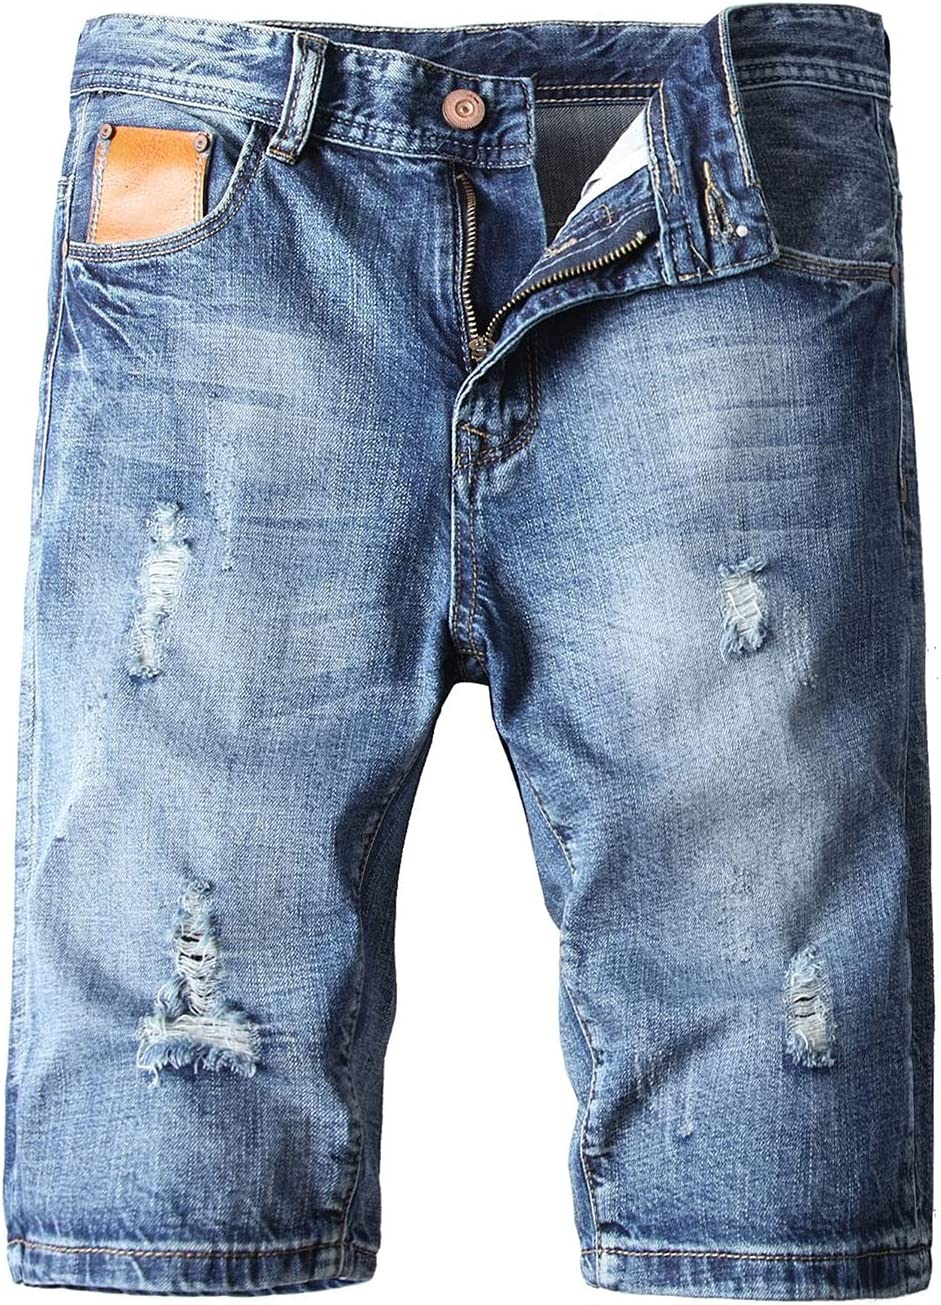 Men's Casual Ripped Denim Short Fashion Straight Fit Washed Jeans Shorts Summer Slim Cotton Stretch Holes Jean Shorts (Light Blue,29)